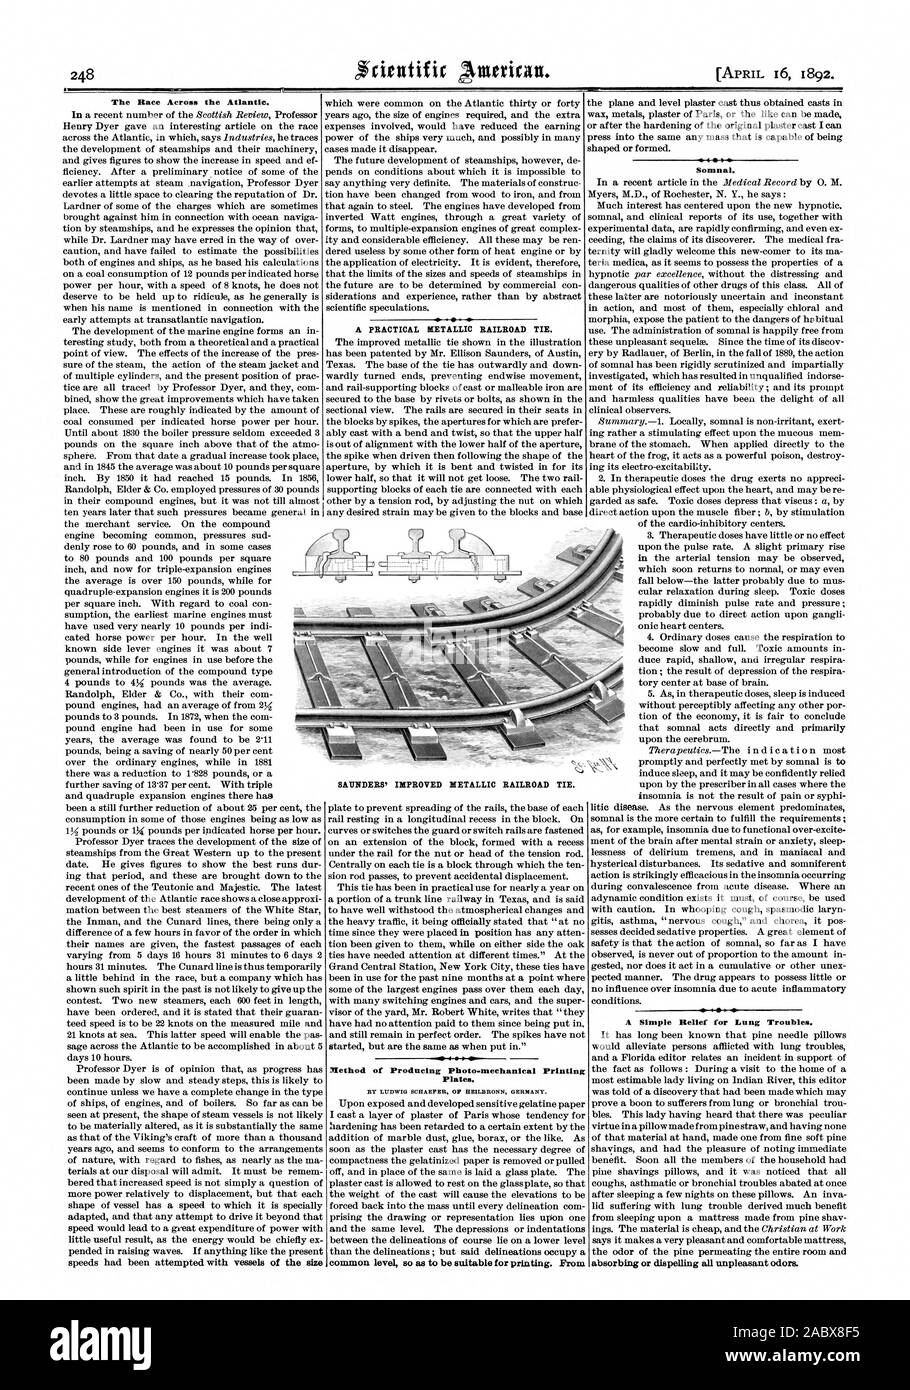 The Race Across the Atlantic. A PRACTICAL METALLIC RAILROAD TIE. Method of Producing Photo-mechanical Printing Plates. BY LUDWIG SCHAEFER OF HEILBRONN GERMANY. common level so as to be suitable for printing. From  4  1  Somnal. A Simple Relief for Lung Troubles. absorbing or dispelling all unpleasant odors. SAUNDERS' IMPROVED METALLIC RAILROAD TIE., scientific american, 1892-04-16 Stock Photo